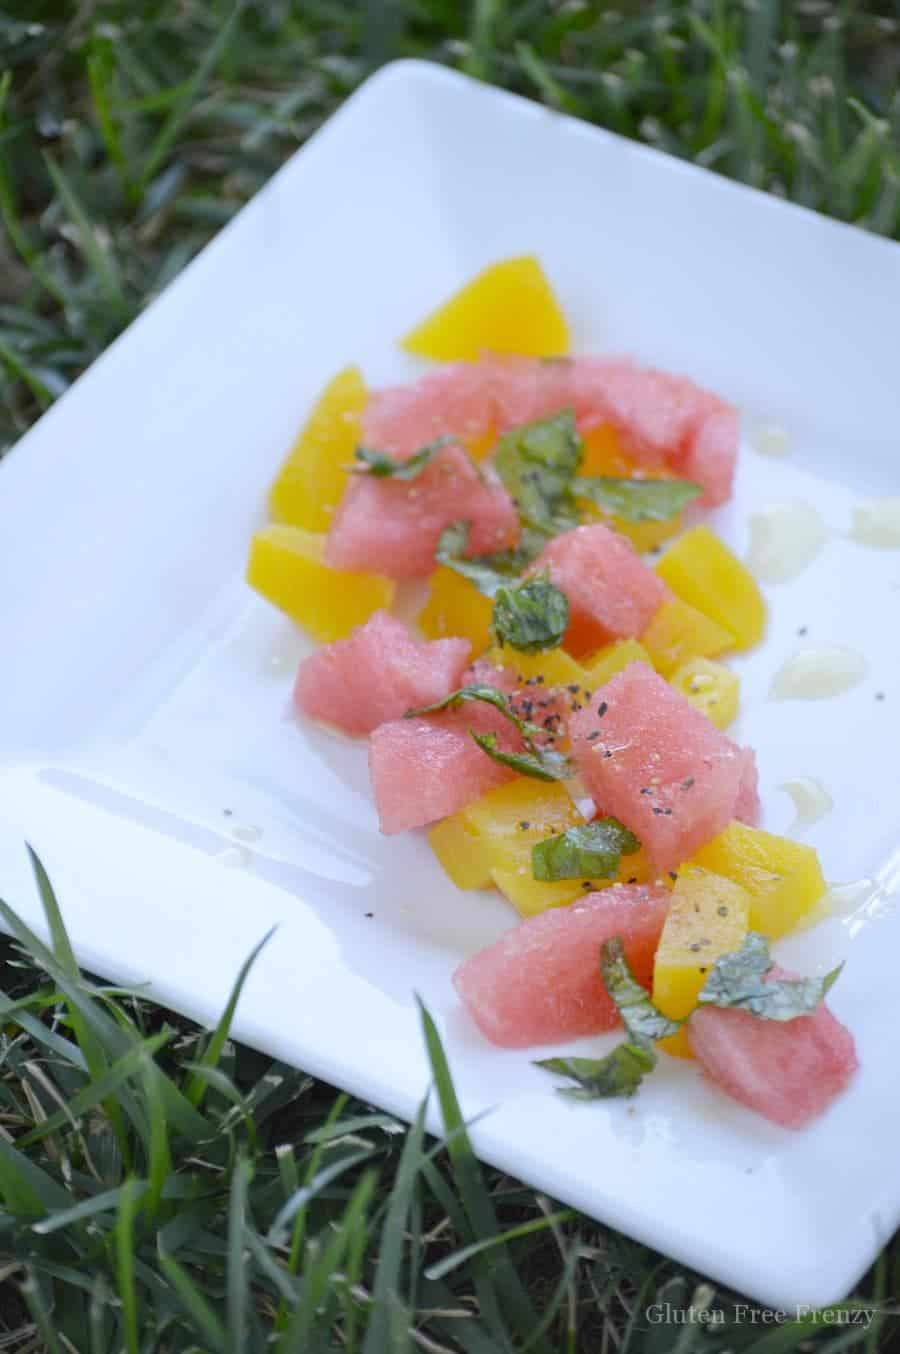 The ultimate summer salad is brought to the table with this golden beet & watermelon salad. It is fresh, easy and absolutely beautiful! glutenfreefrenzy.com